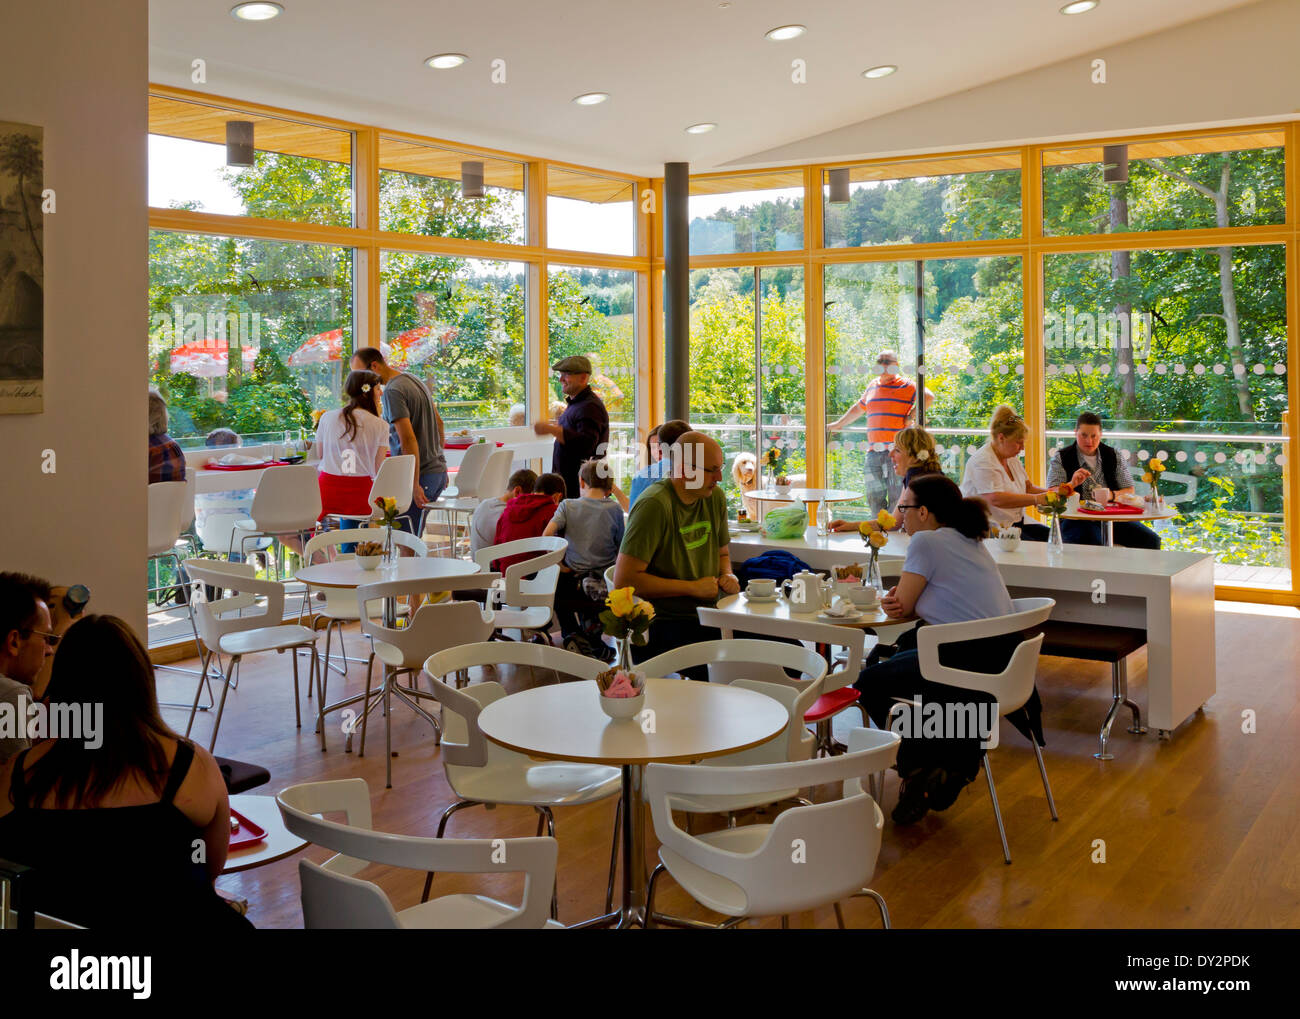 visitor centre cafe at creswell crags a limestone gorge containing